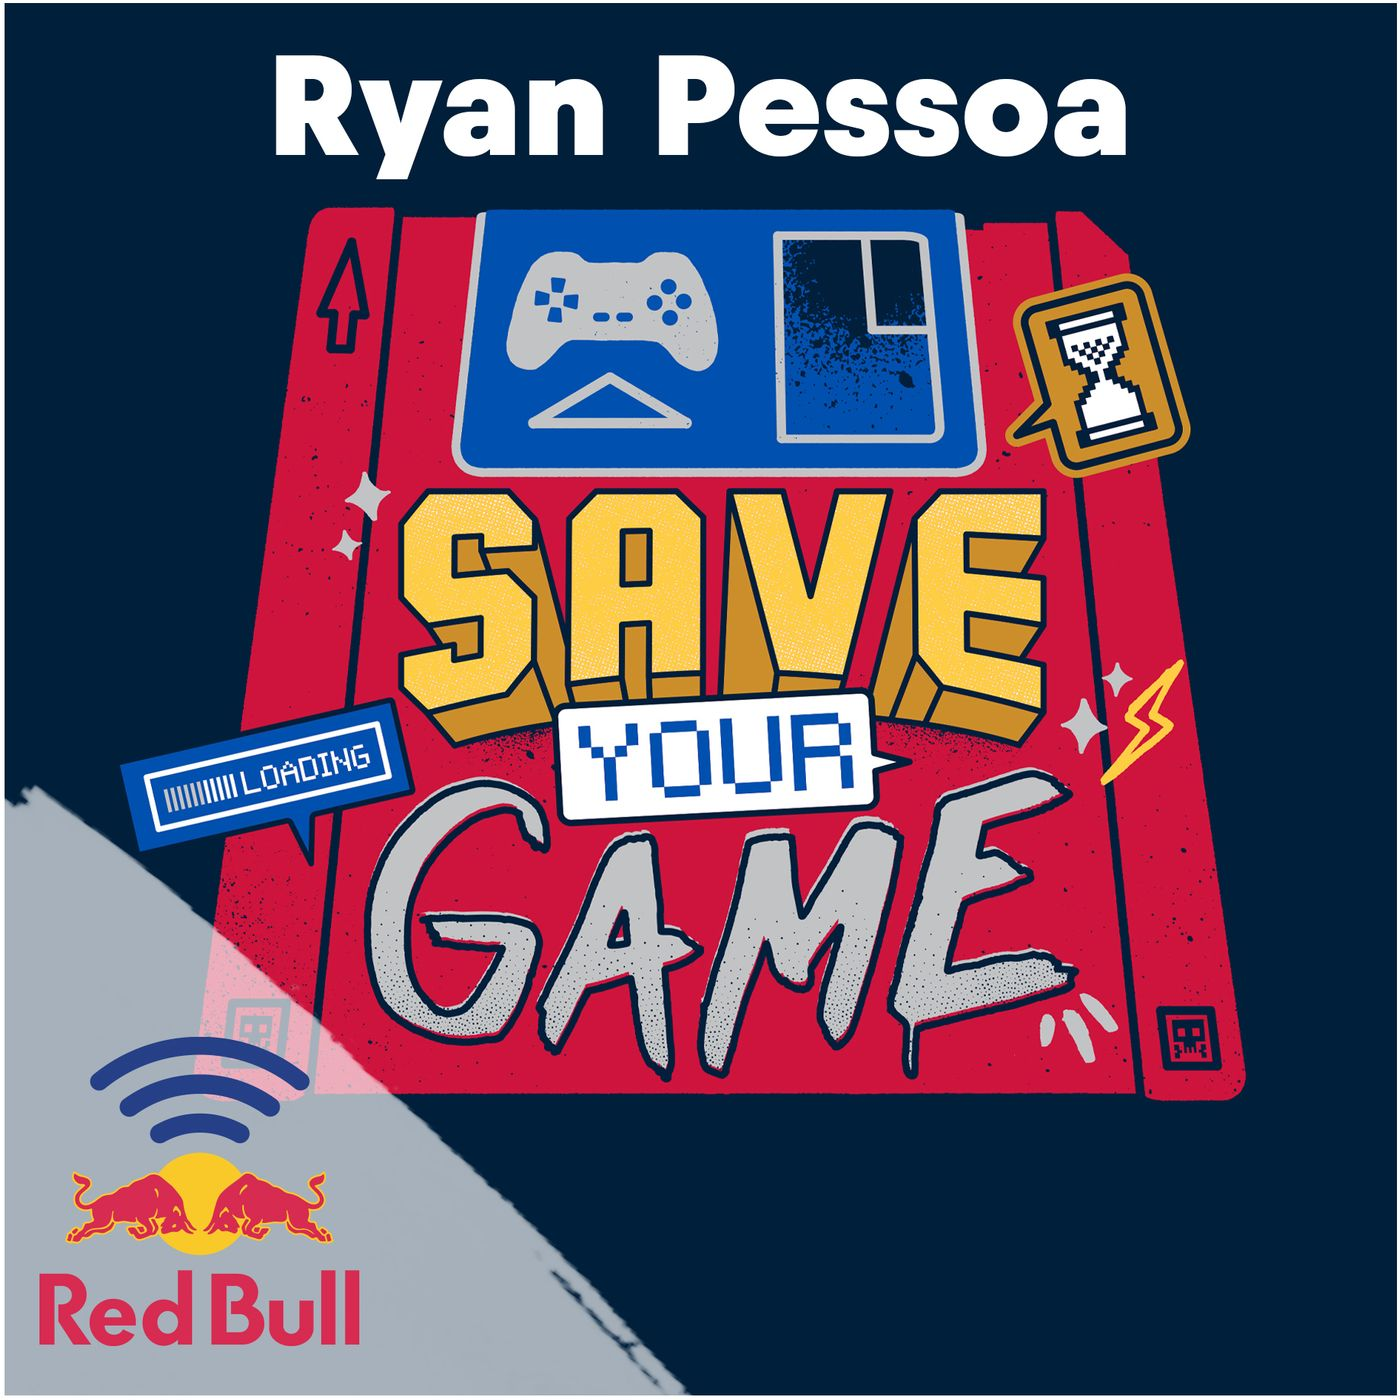 Life in gaming with FIFA pro Ryan Pessoa